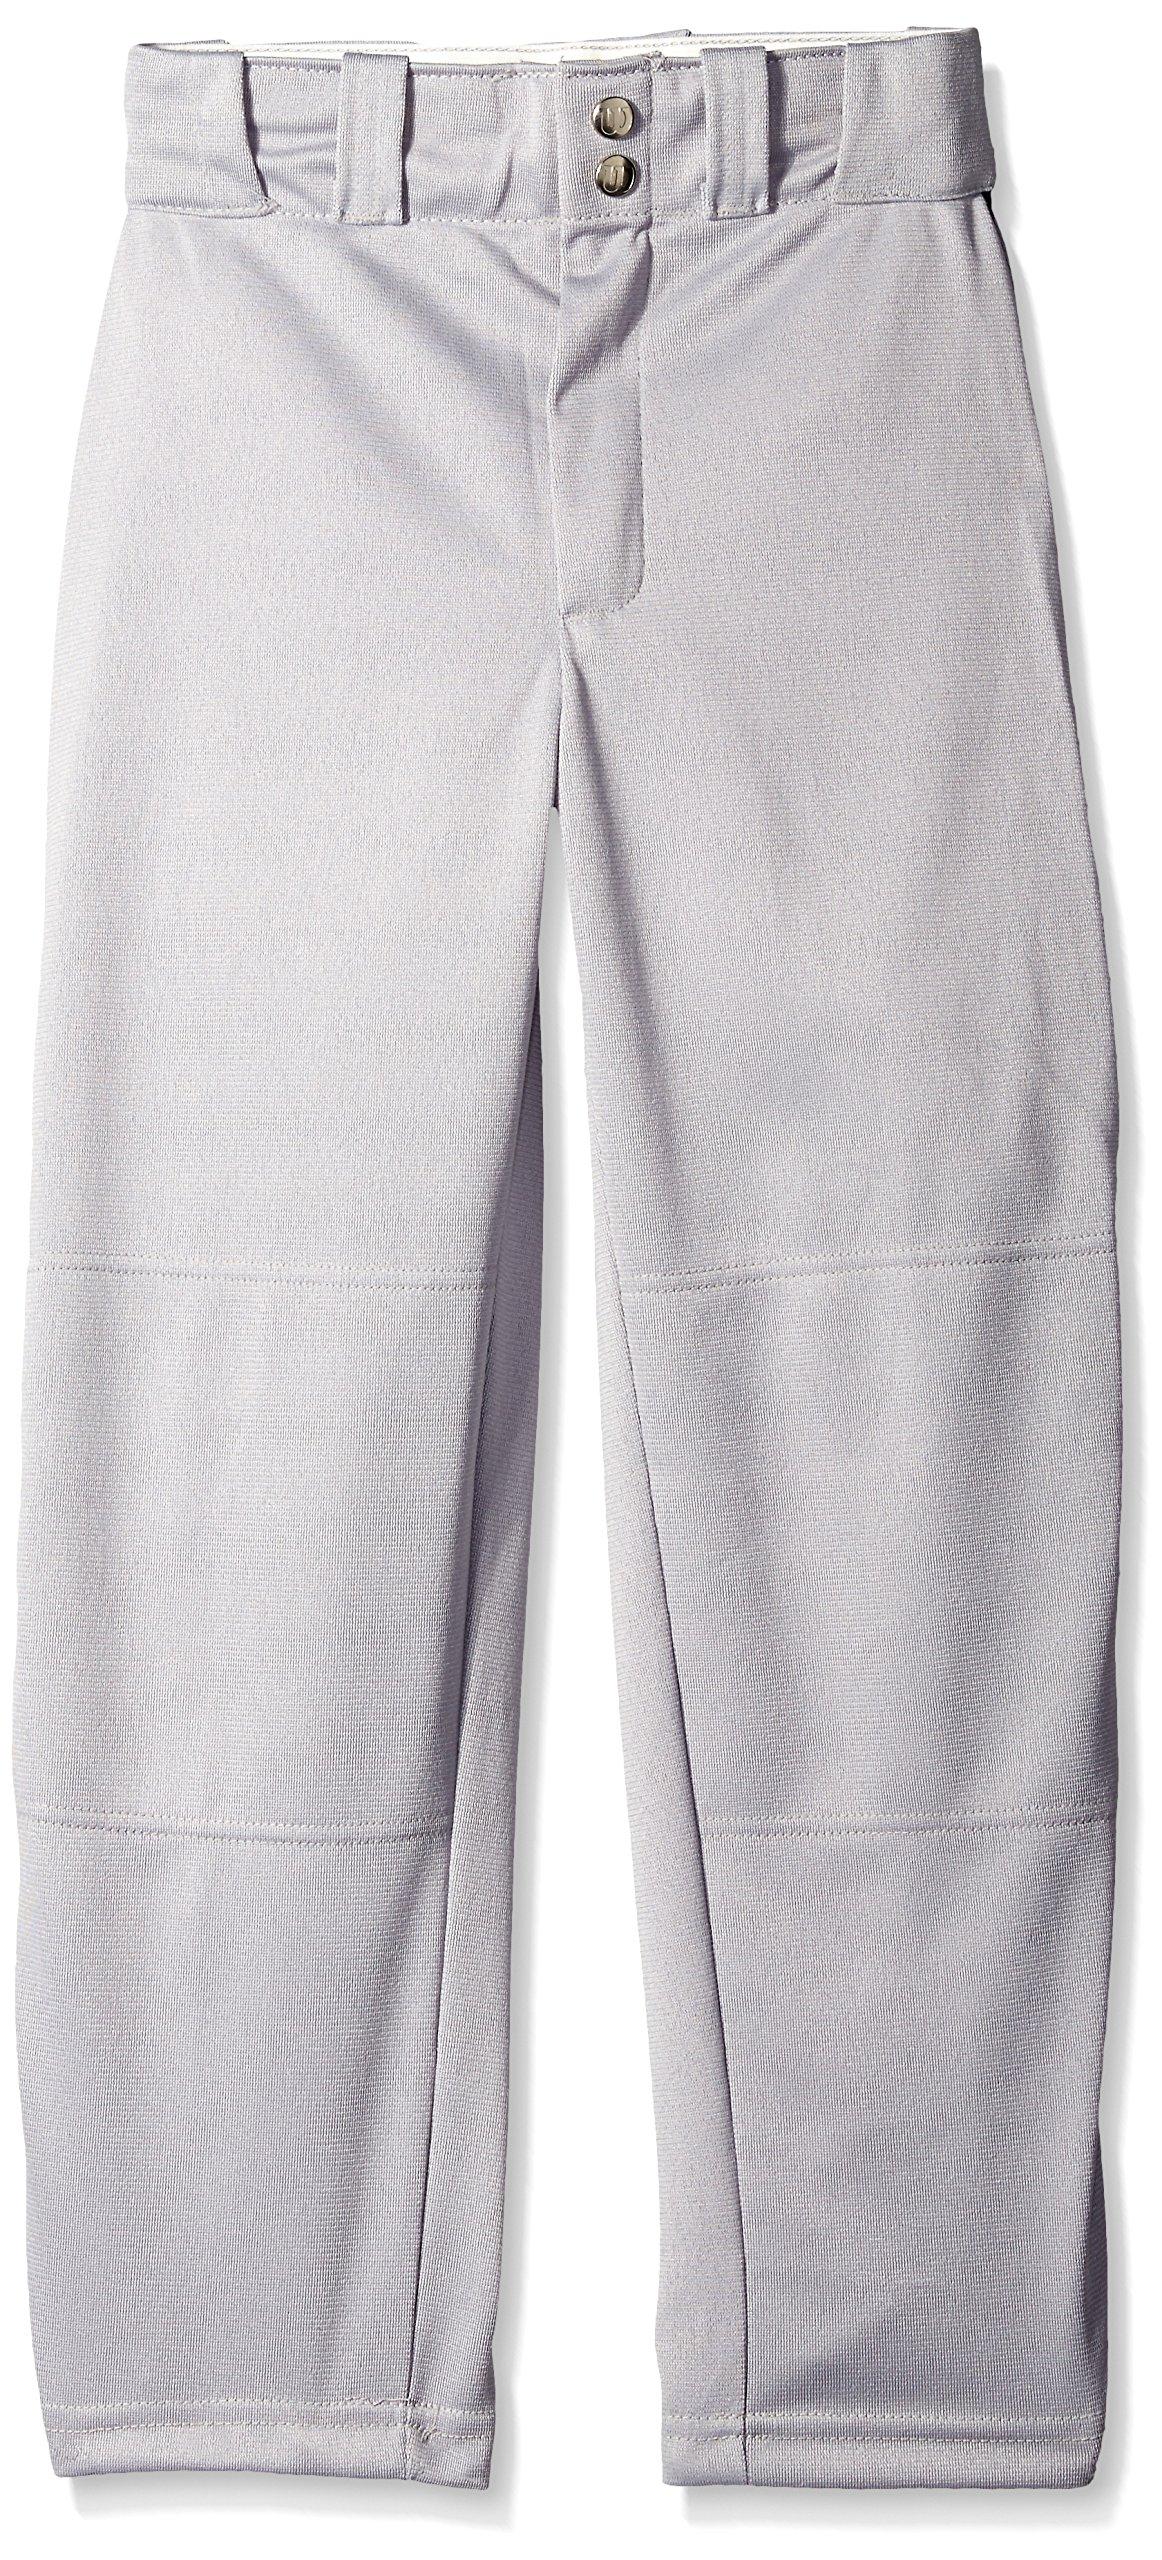 Wilson Youth Classic Relaxed Fit Piped Baseball Pant, Grey/Navy, Small by Wilson